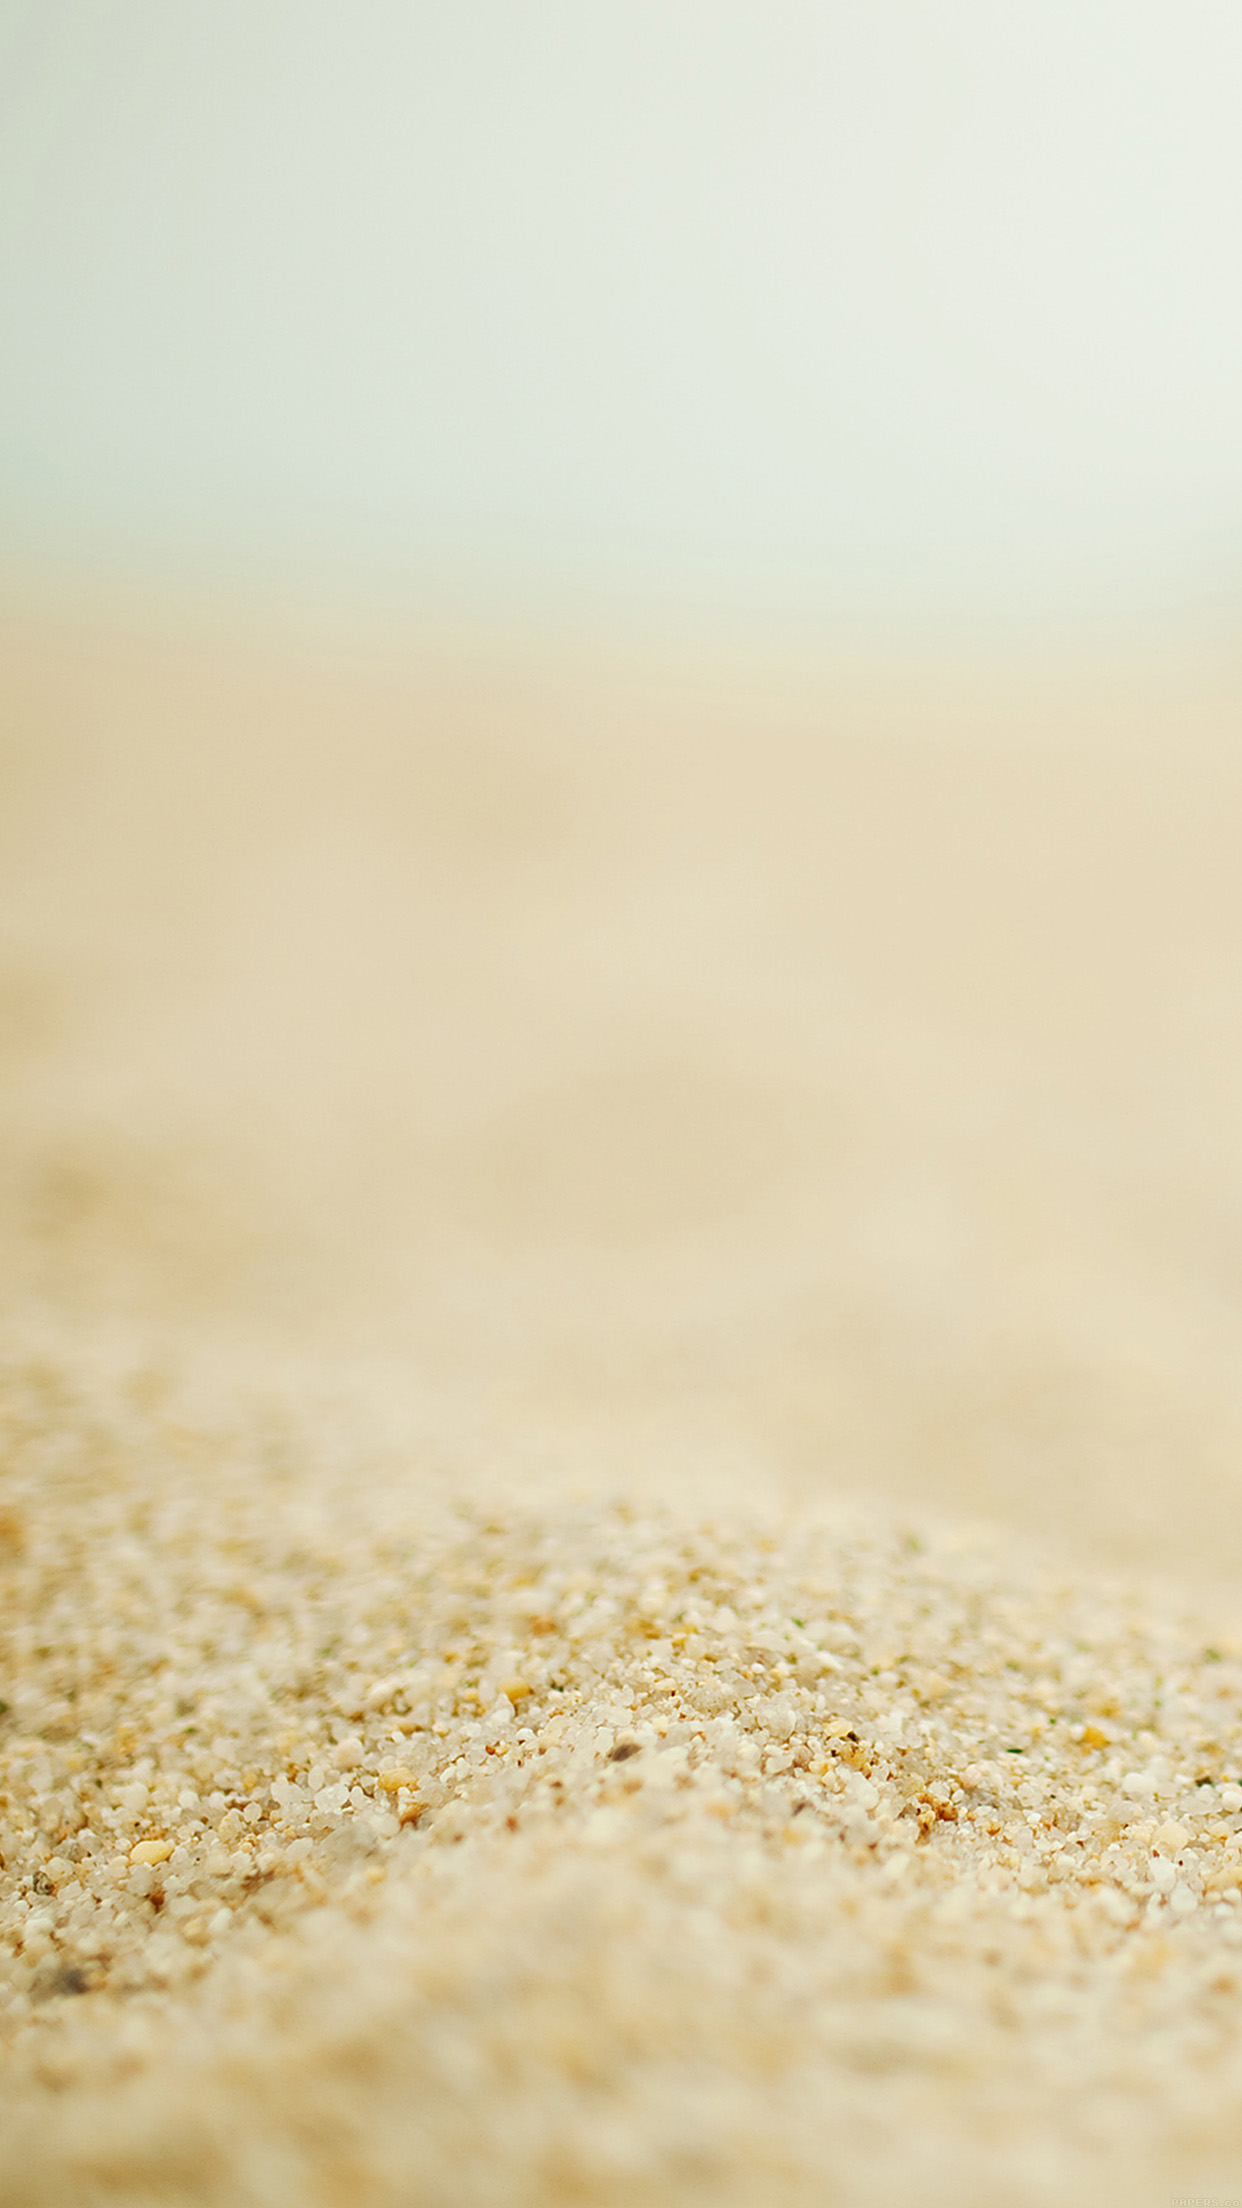 Sand Nature Beach View Android wallpaper